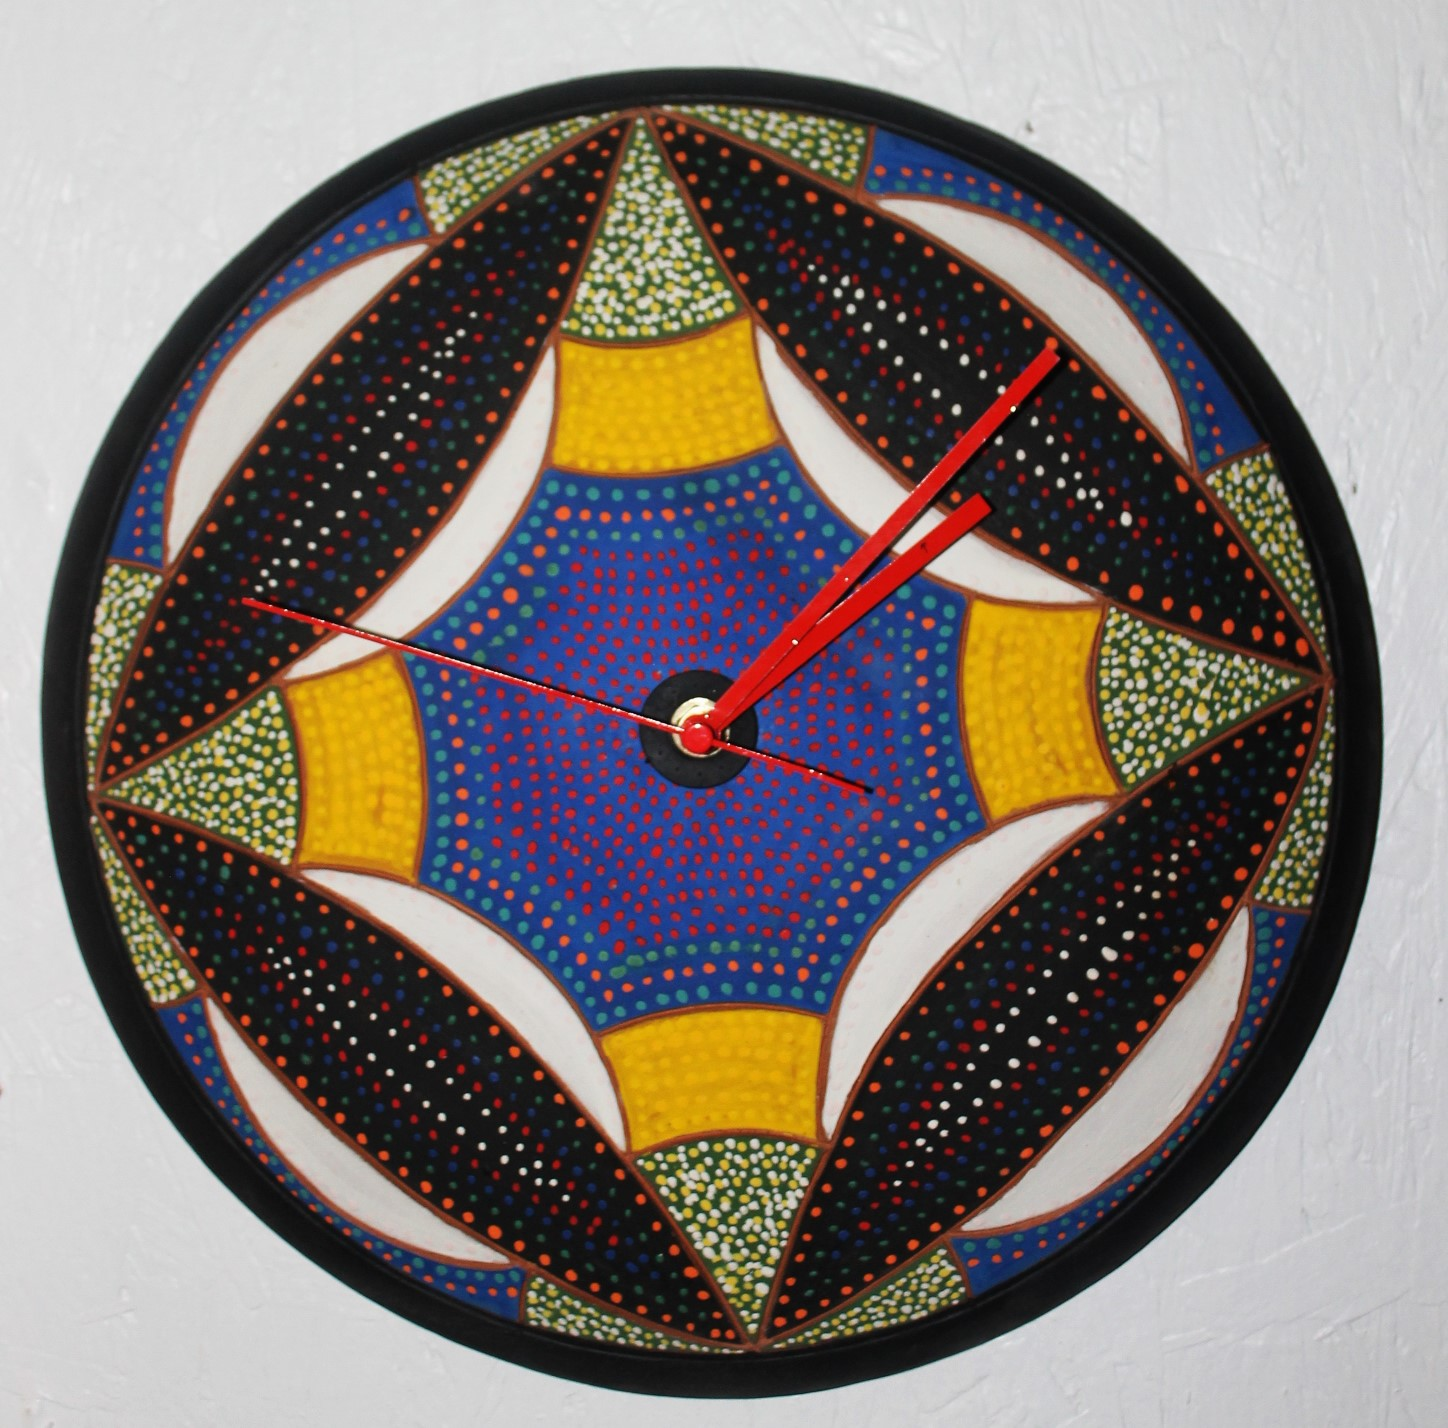 "12"" D Wall Clock $90.00 plus tax and shippingavailable. This pic shows clock top leaning to the left"